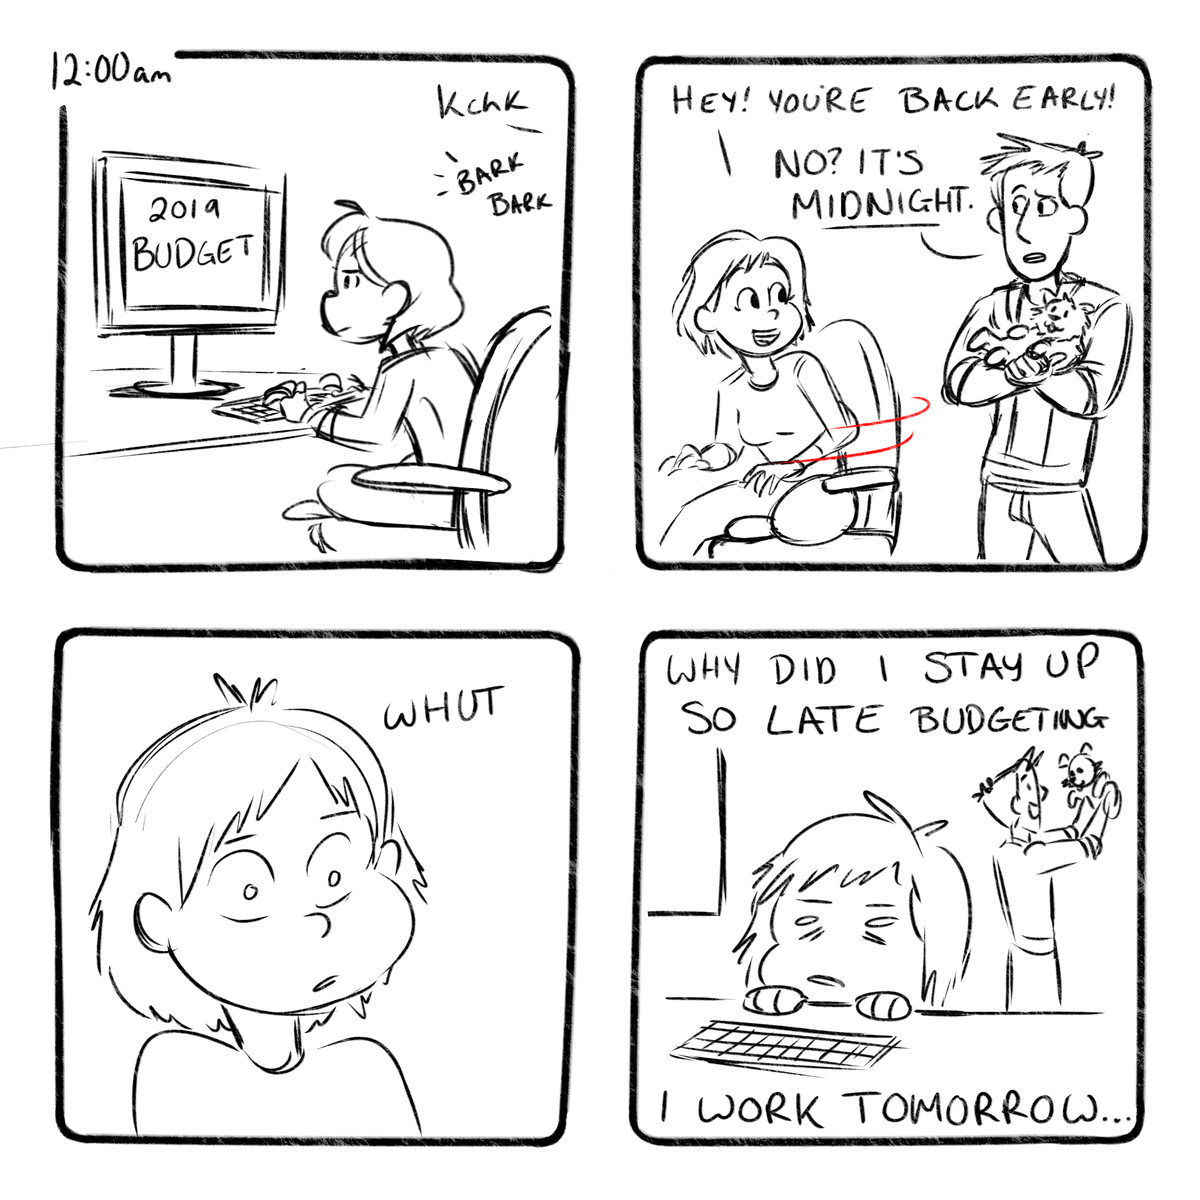 Yesterday was pretty busy so I didn't have time to do hourlies...but catching up today! These are based on yesterdays events. OTL   #hourlies #hourlies2019 #comicstrip